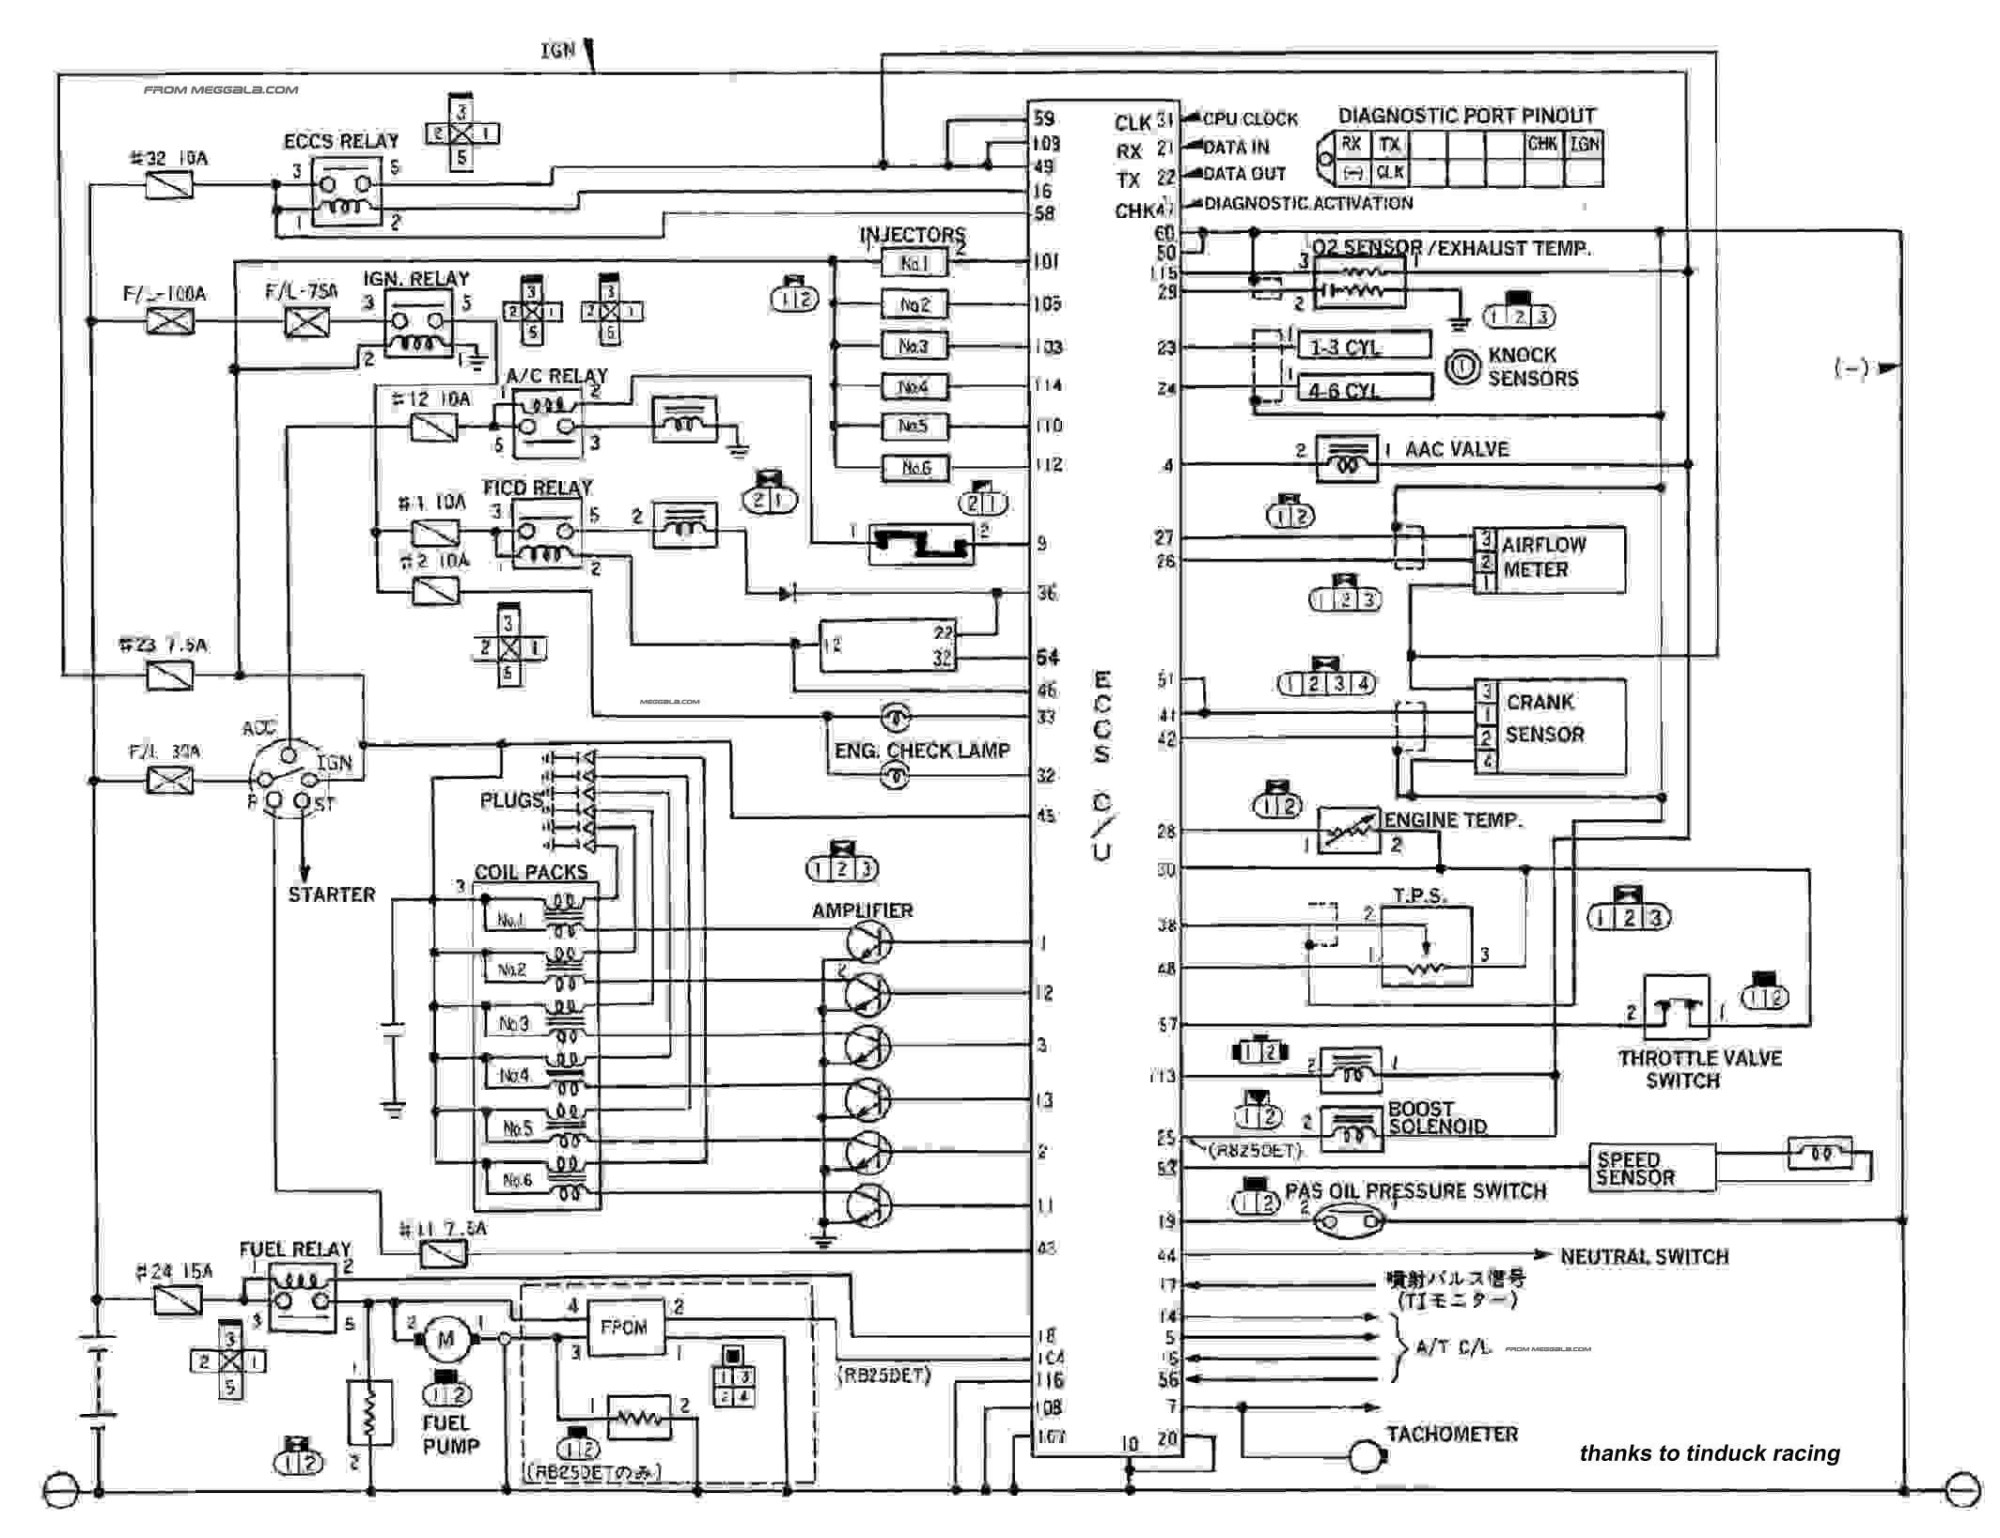 hight resolution of american standard furnace wiring diagram ysc048a4emadd wiring library rh 52 mac happen de american standard electric furnace wiring diagrams american